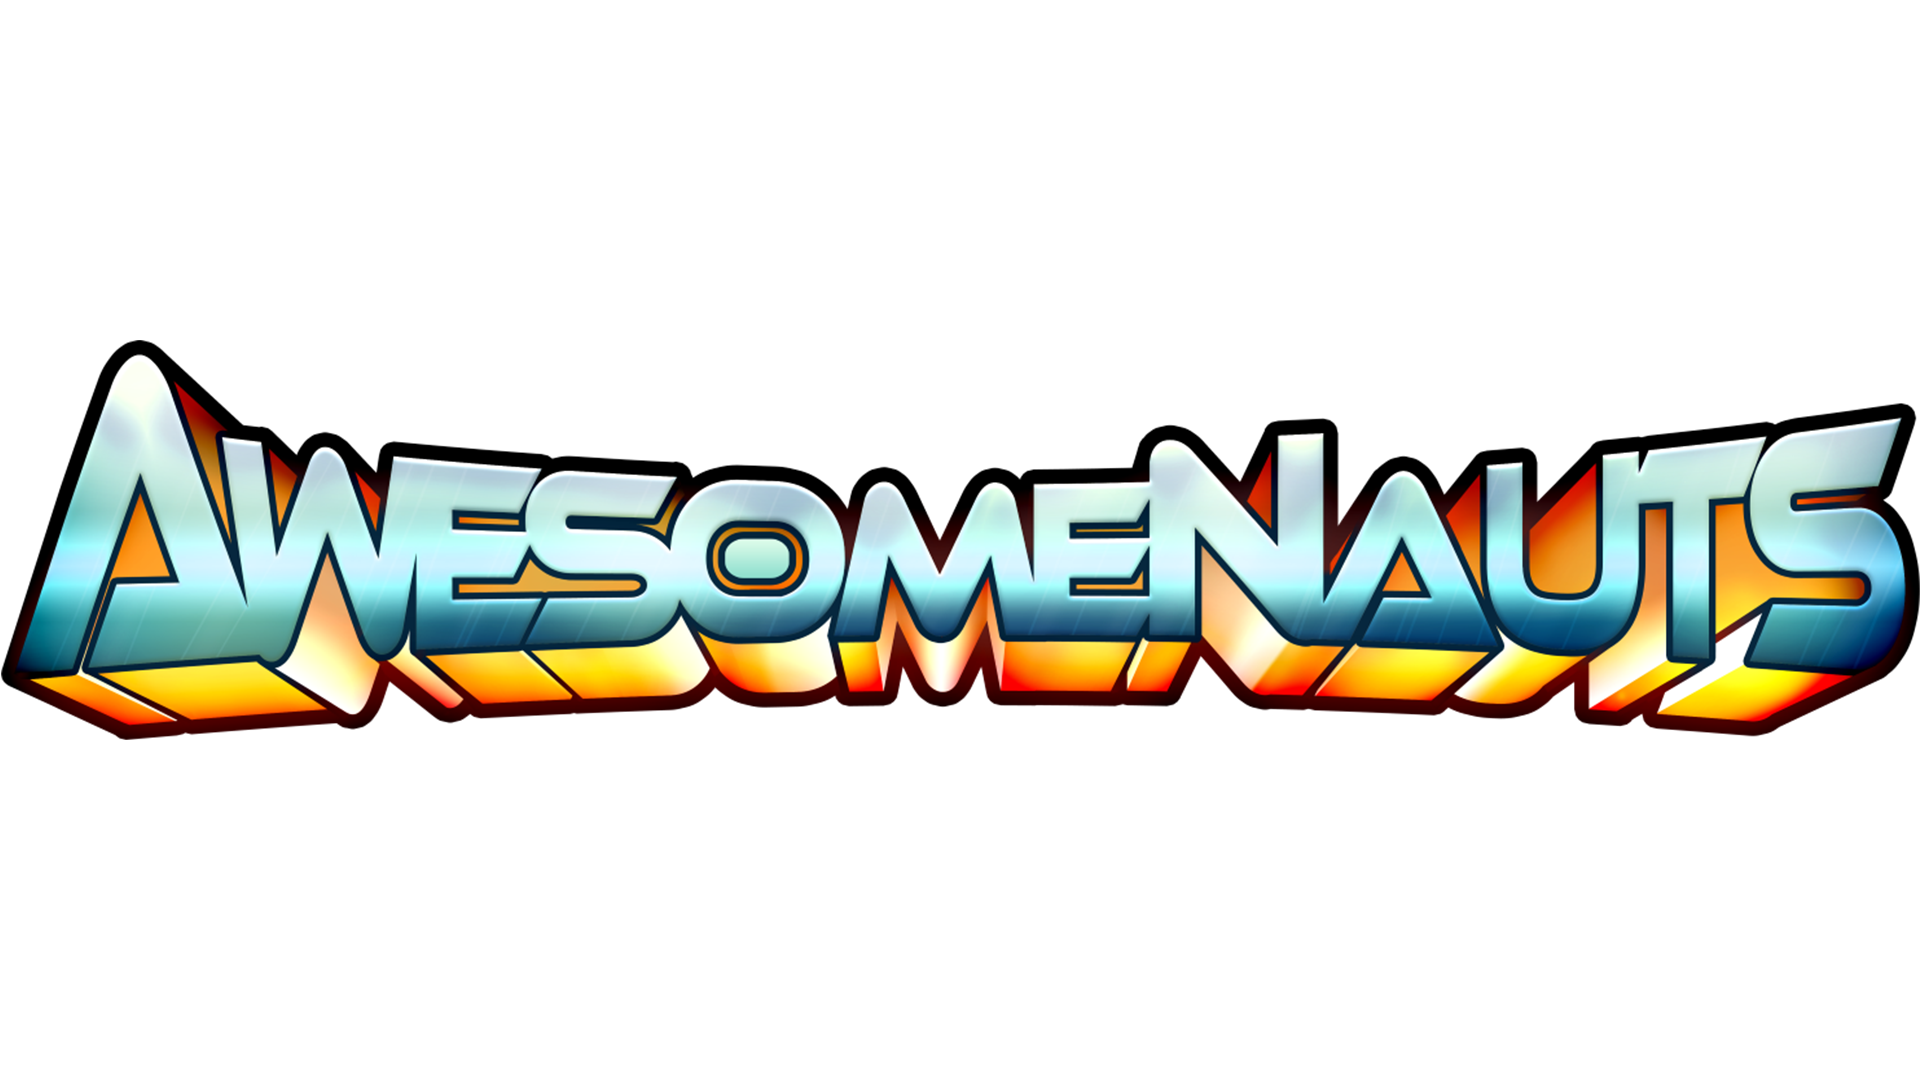 Awesomenauts Logo